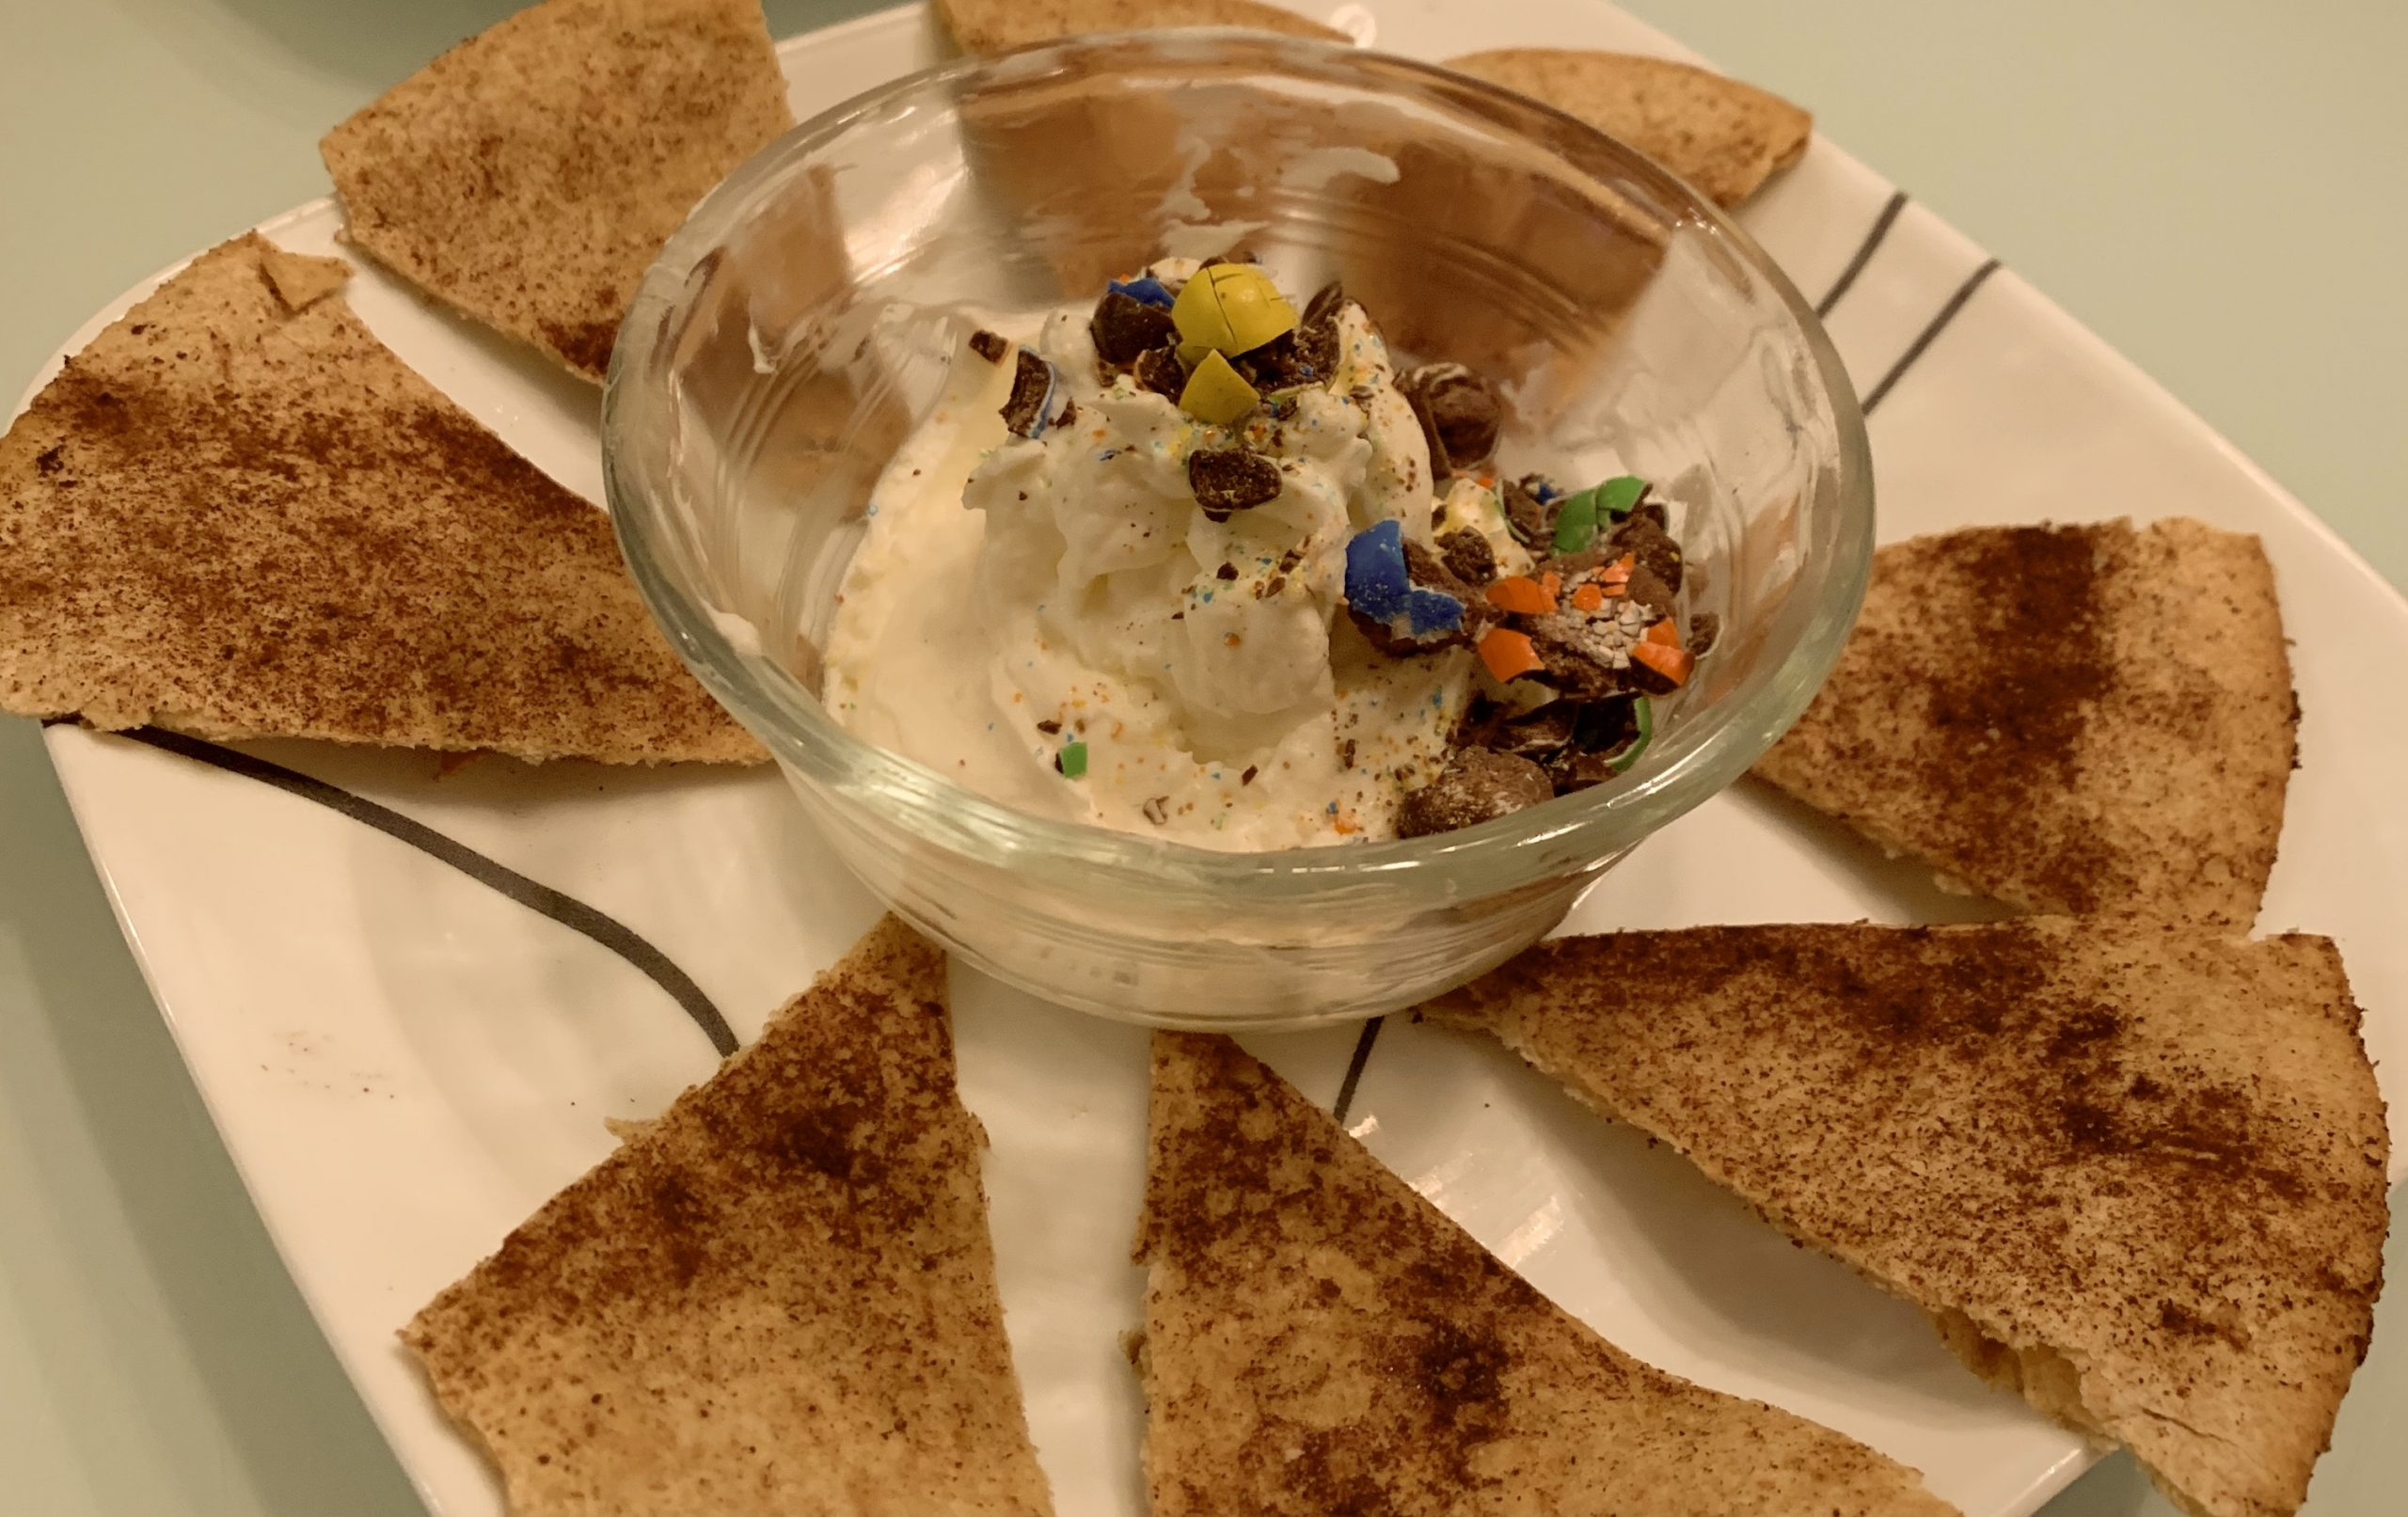 Dessert nachos - The Hot Mess Press